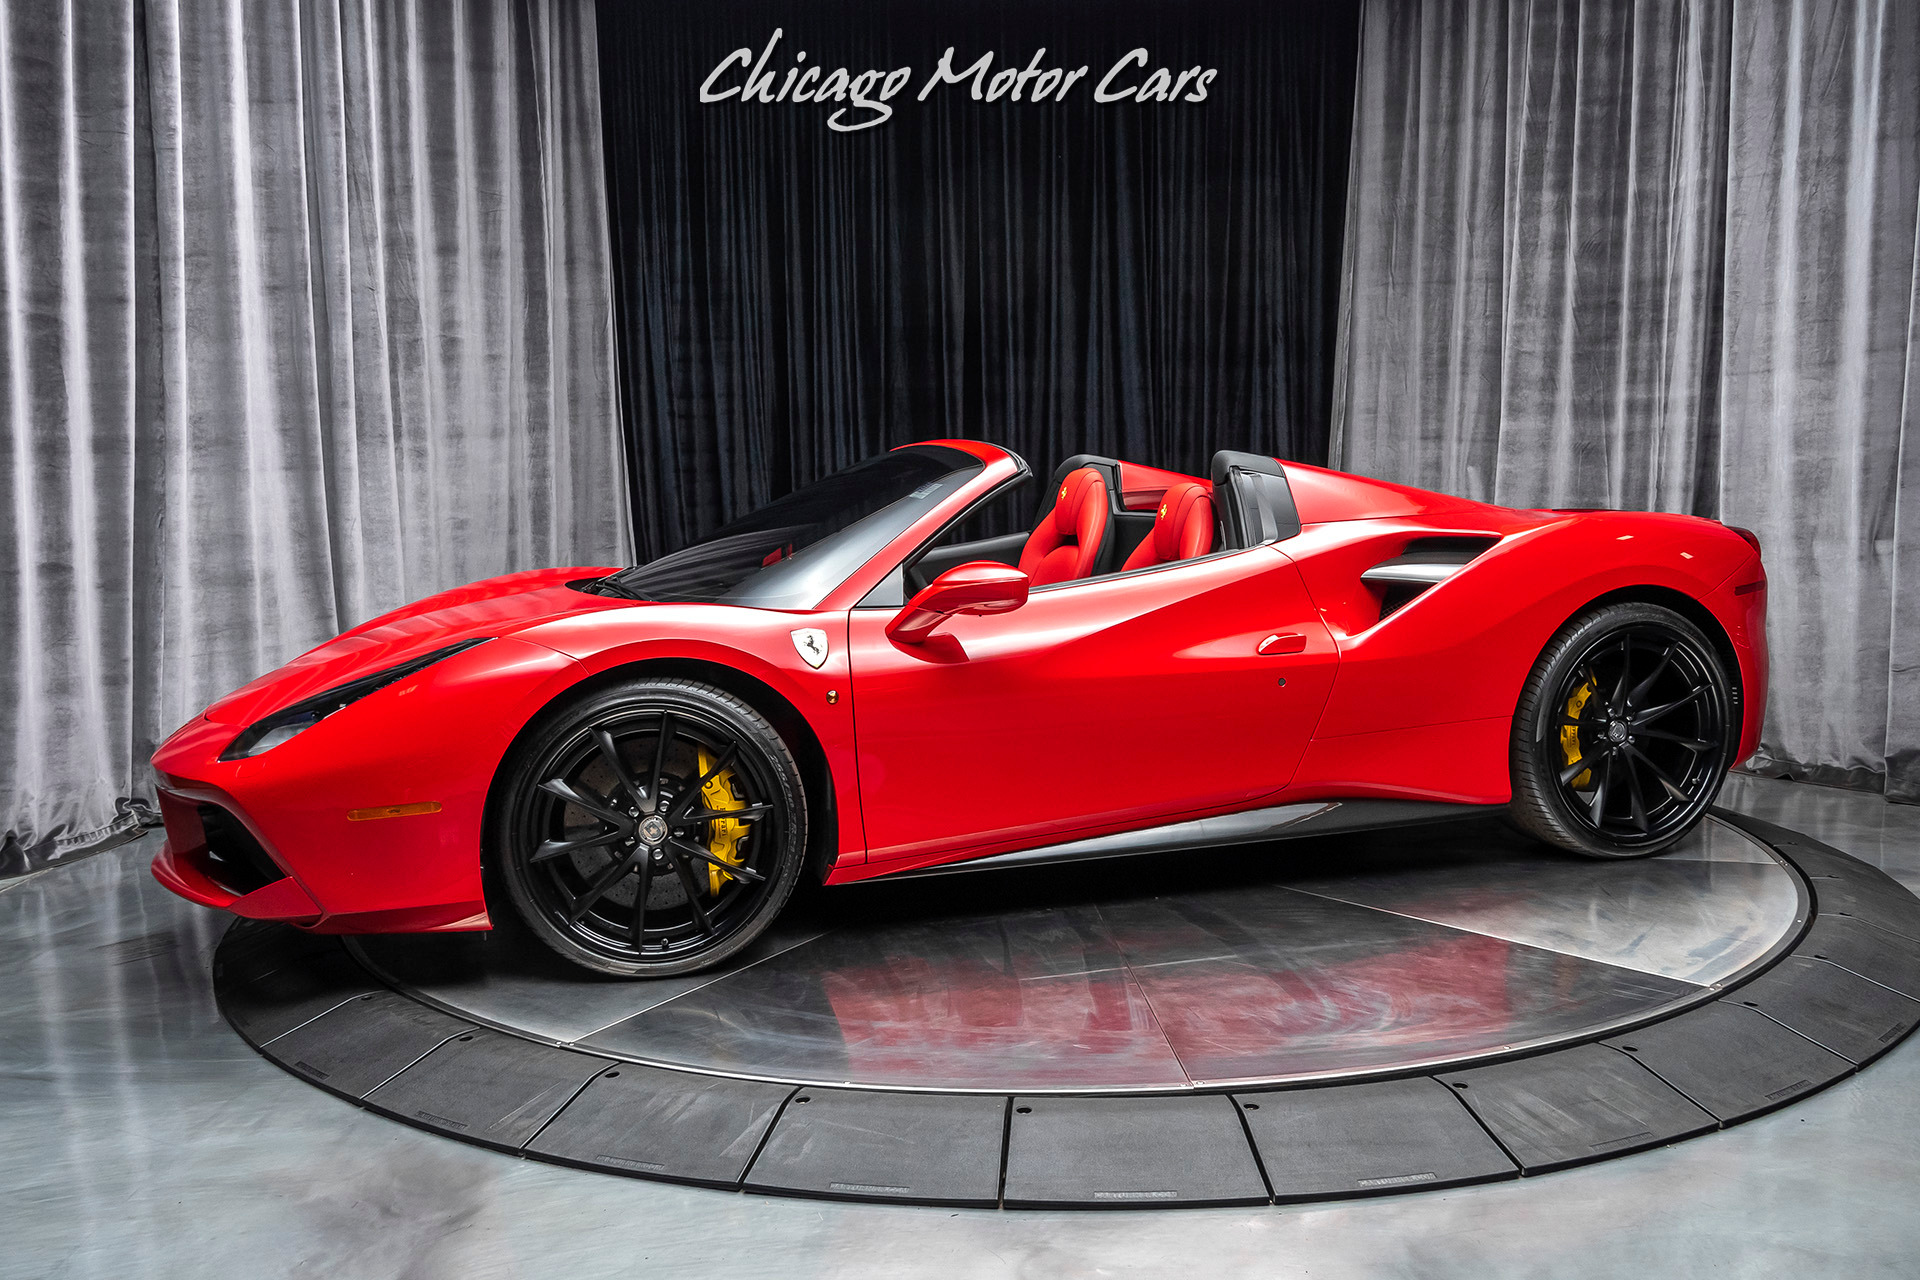 Used 2018 Ferrari 488 Spider Convertible 21 22 Hre Performance Wheels Carbon Fiber Sport Exhaust For Sale Special Pricing Chicago Motor Cars Stock 16728